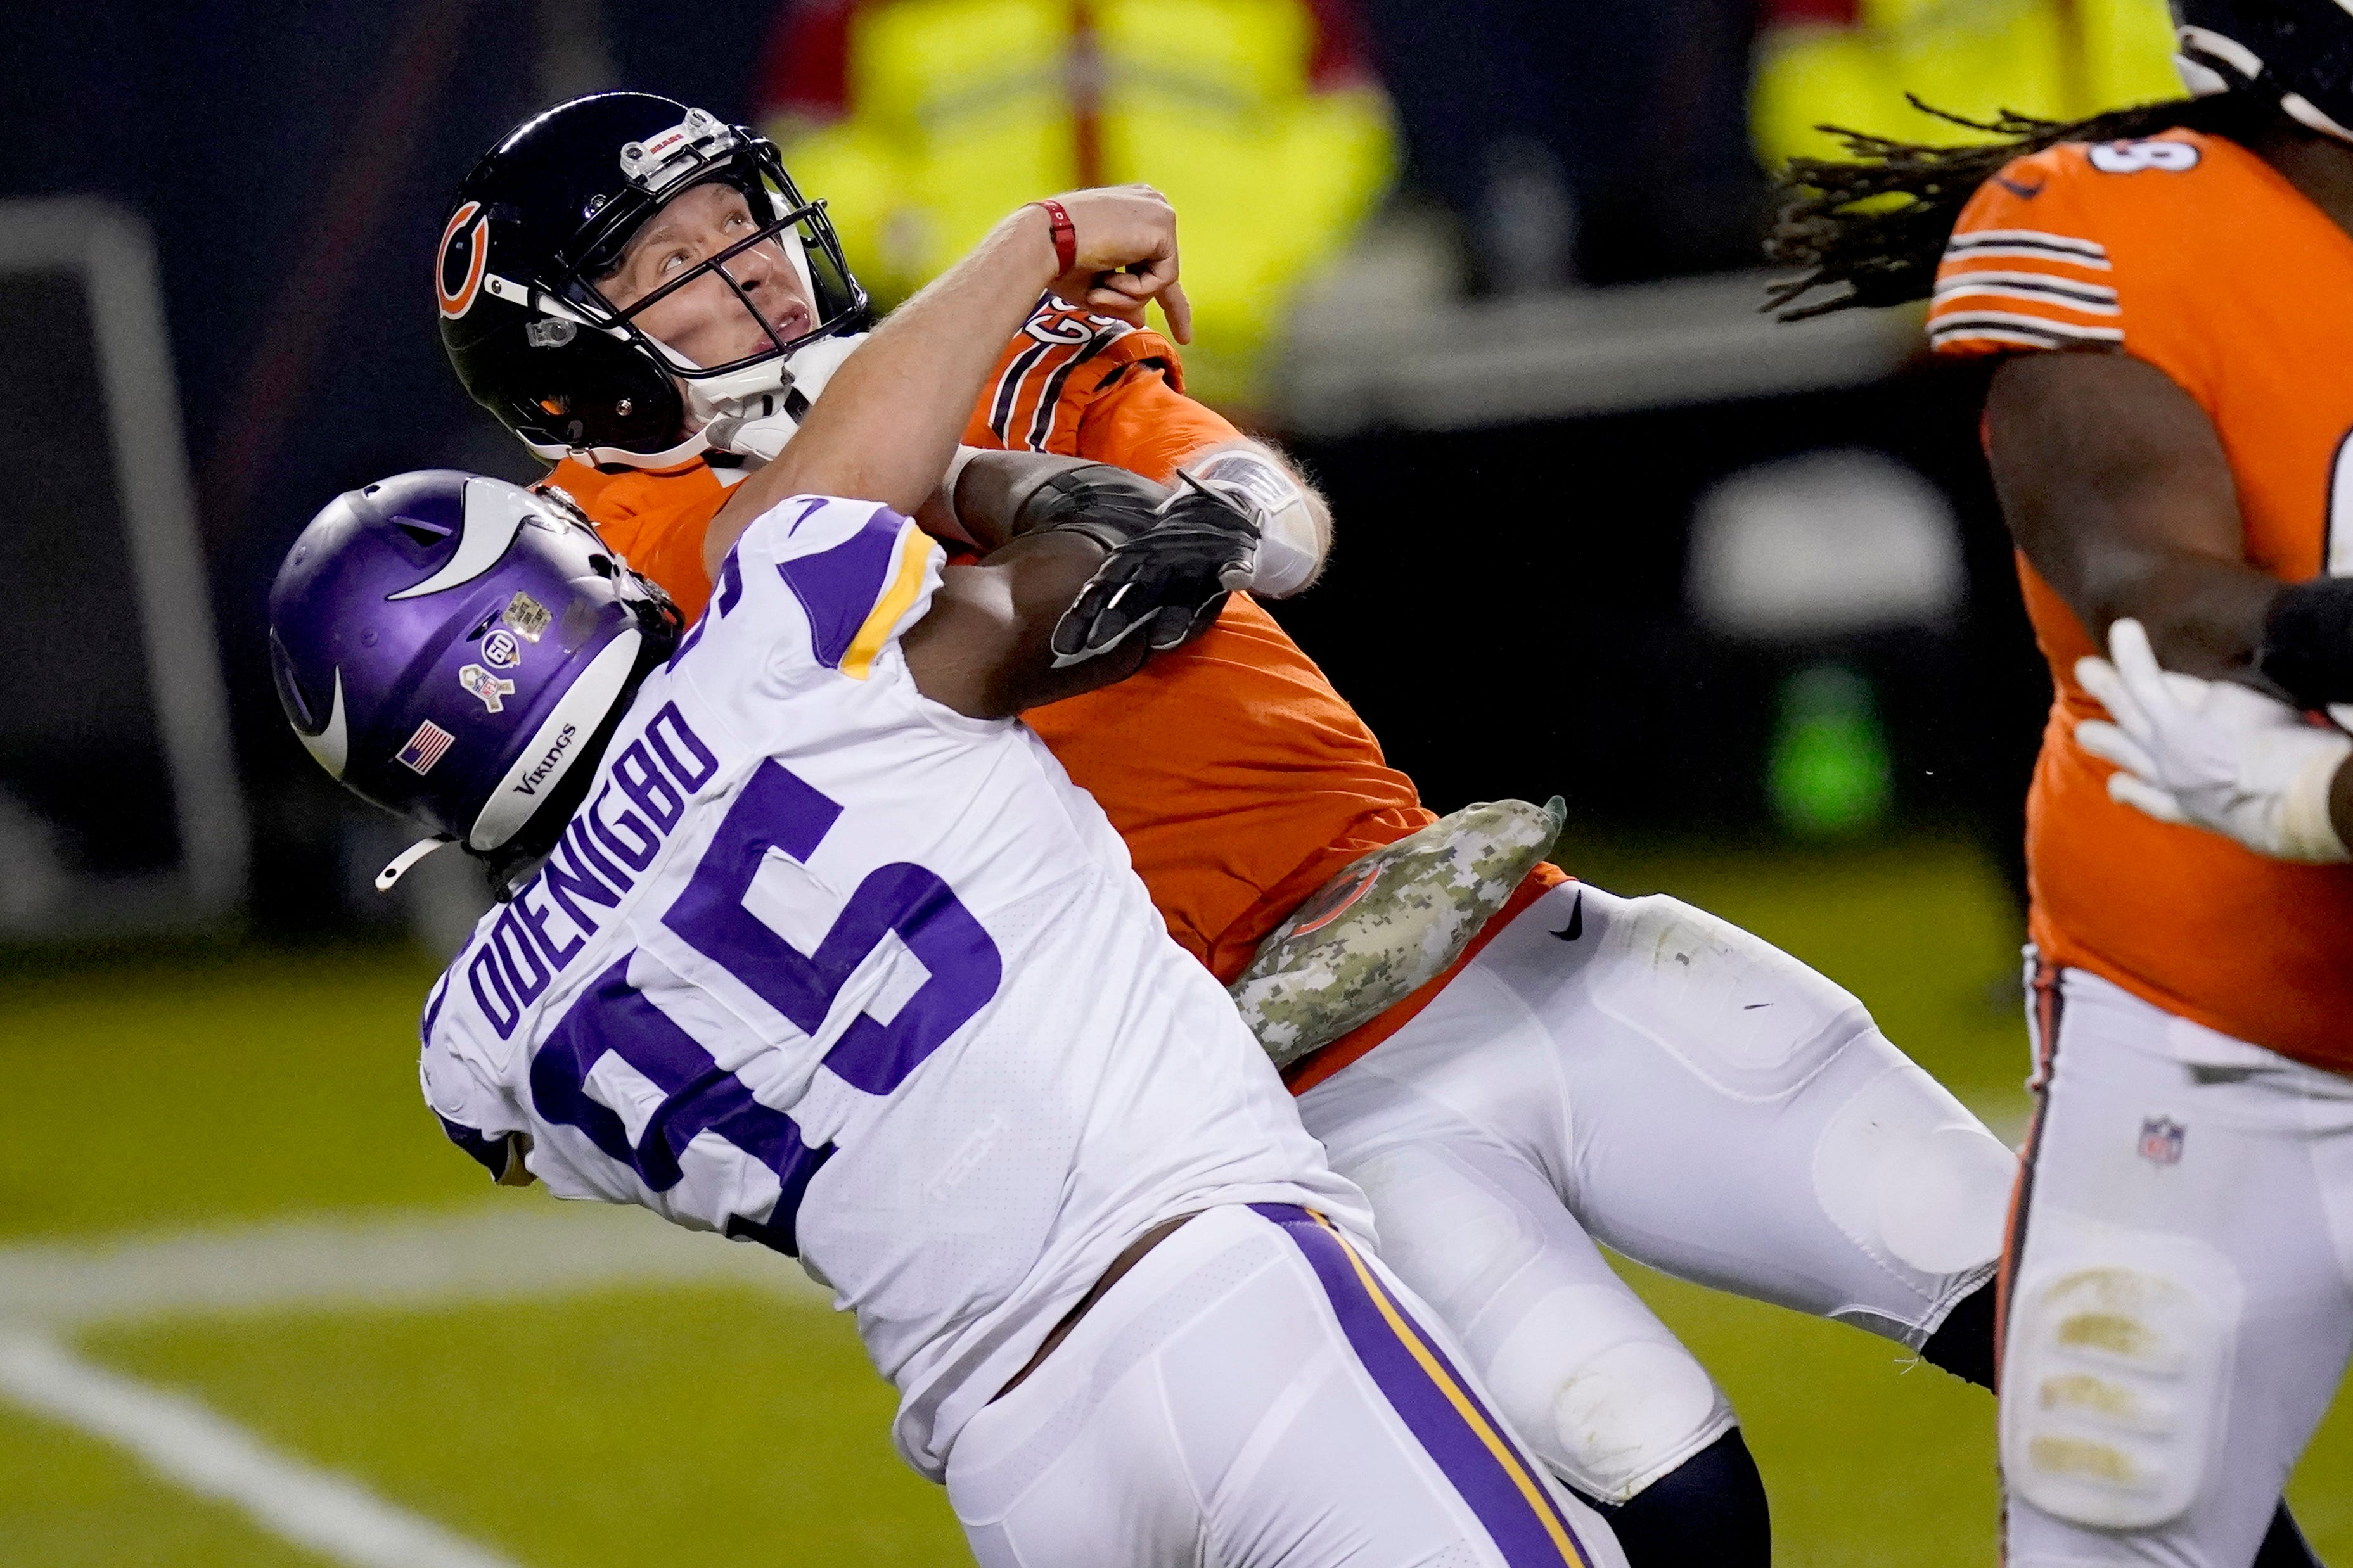 Nick Foles carted off field late in Bears' loss to Vikings on MNF